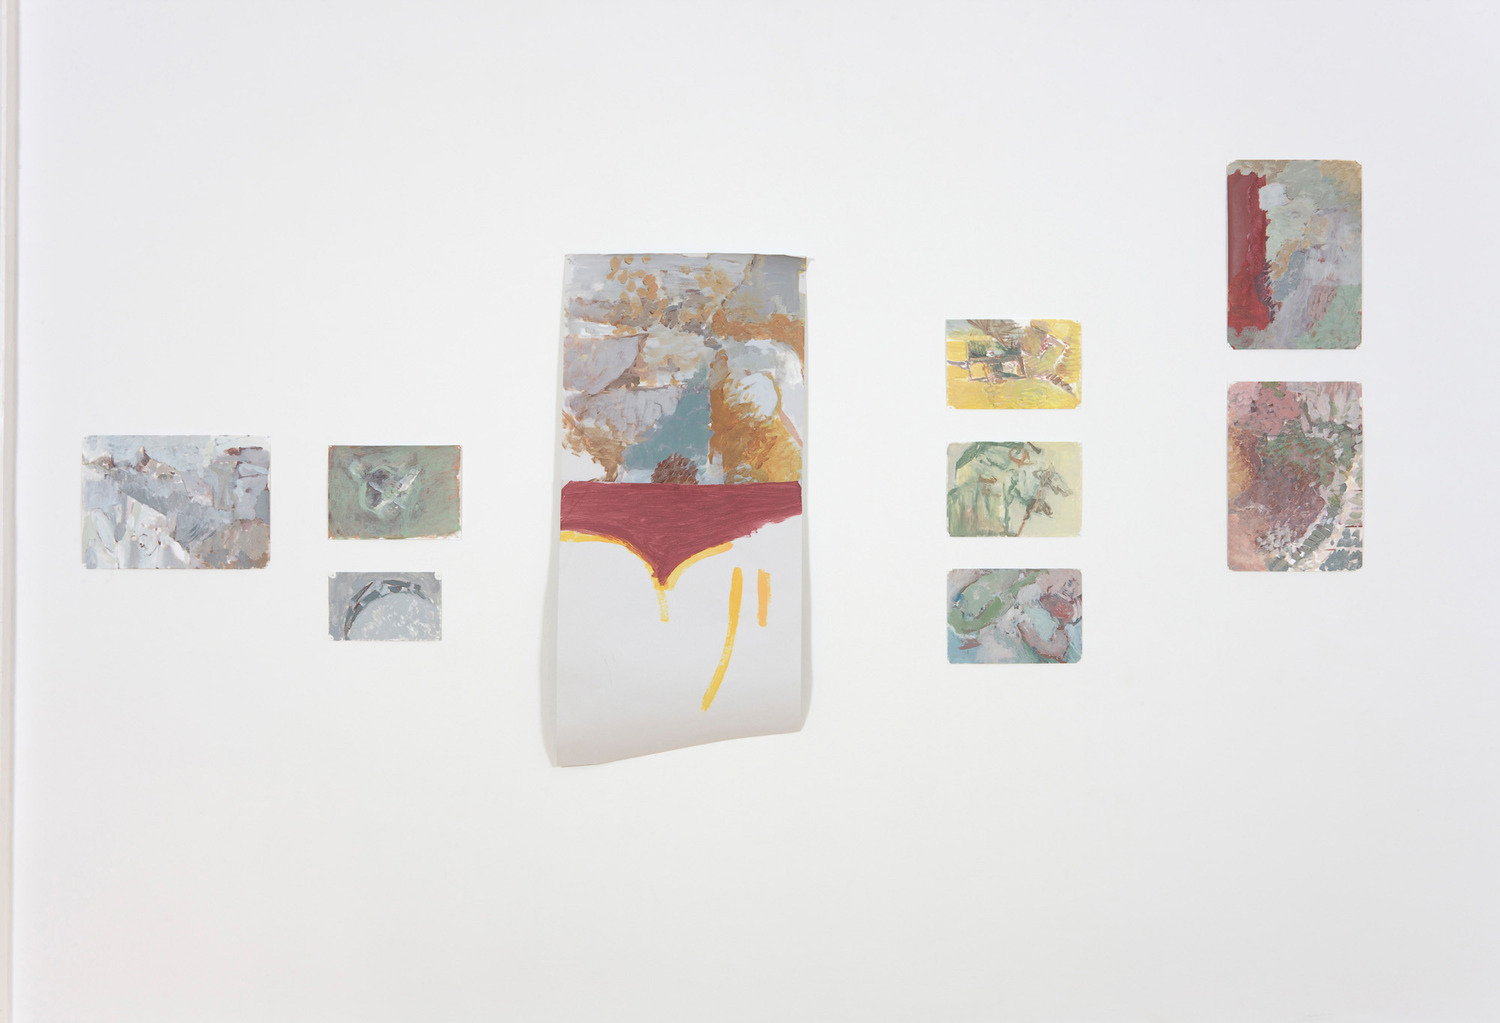 Motor & Untitled, 2011, Acrylic on paper, Dimensions variable